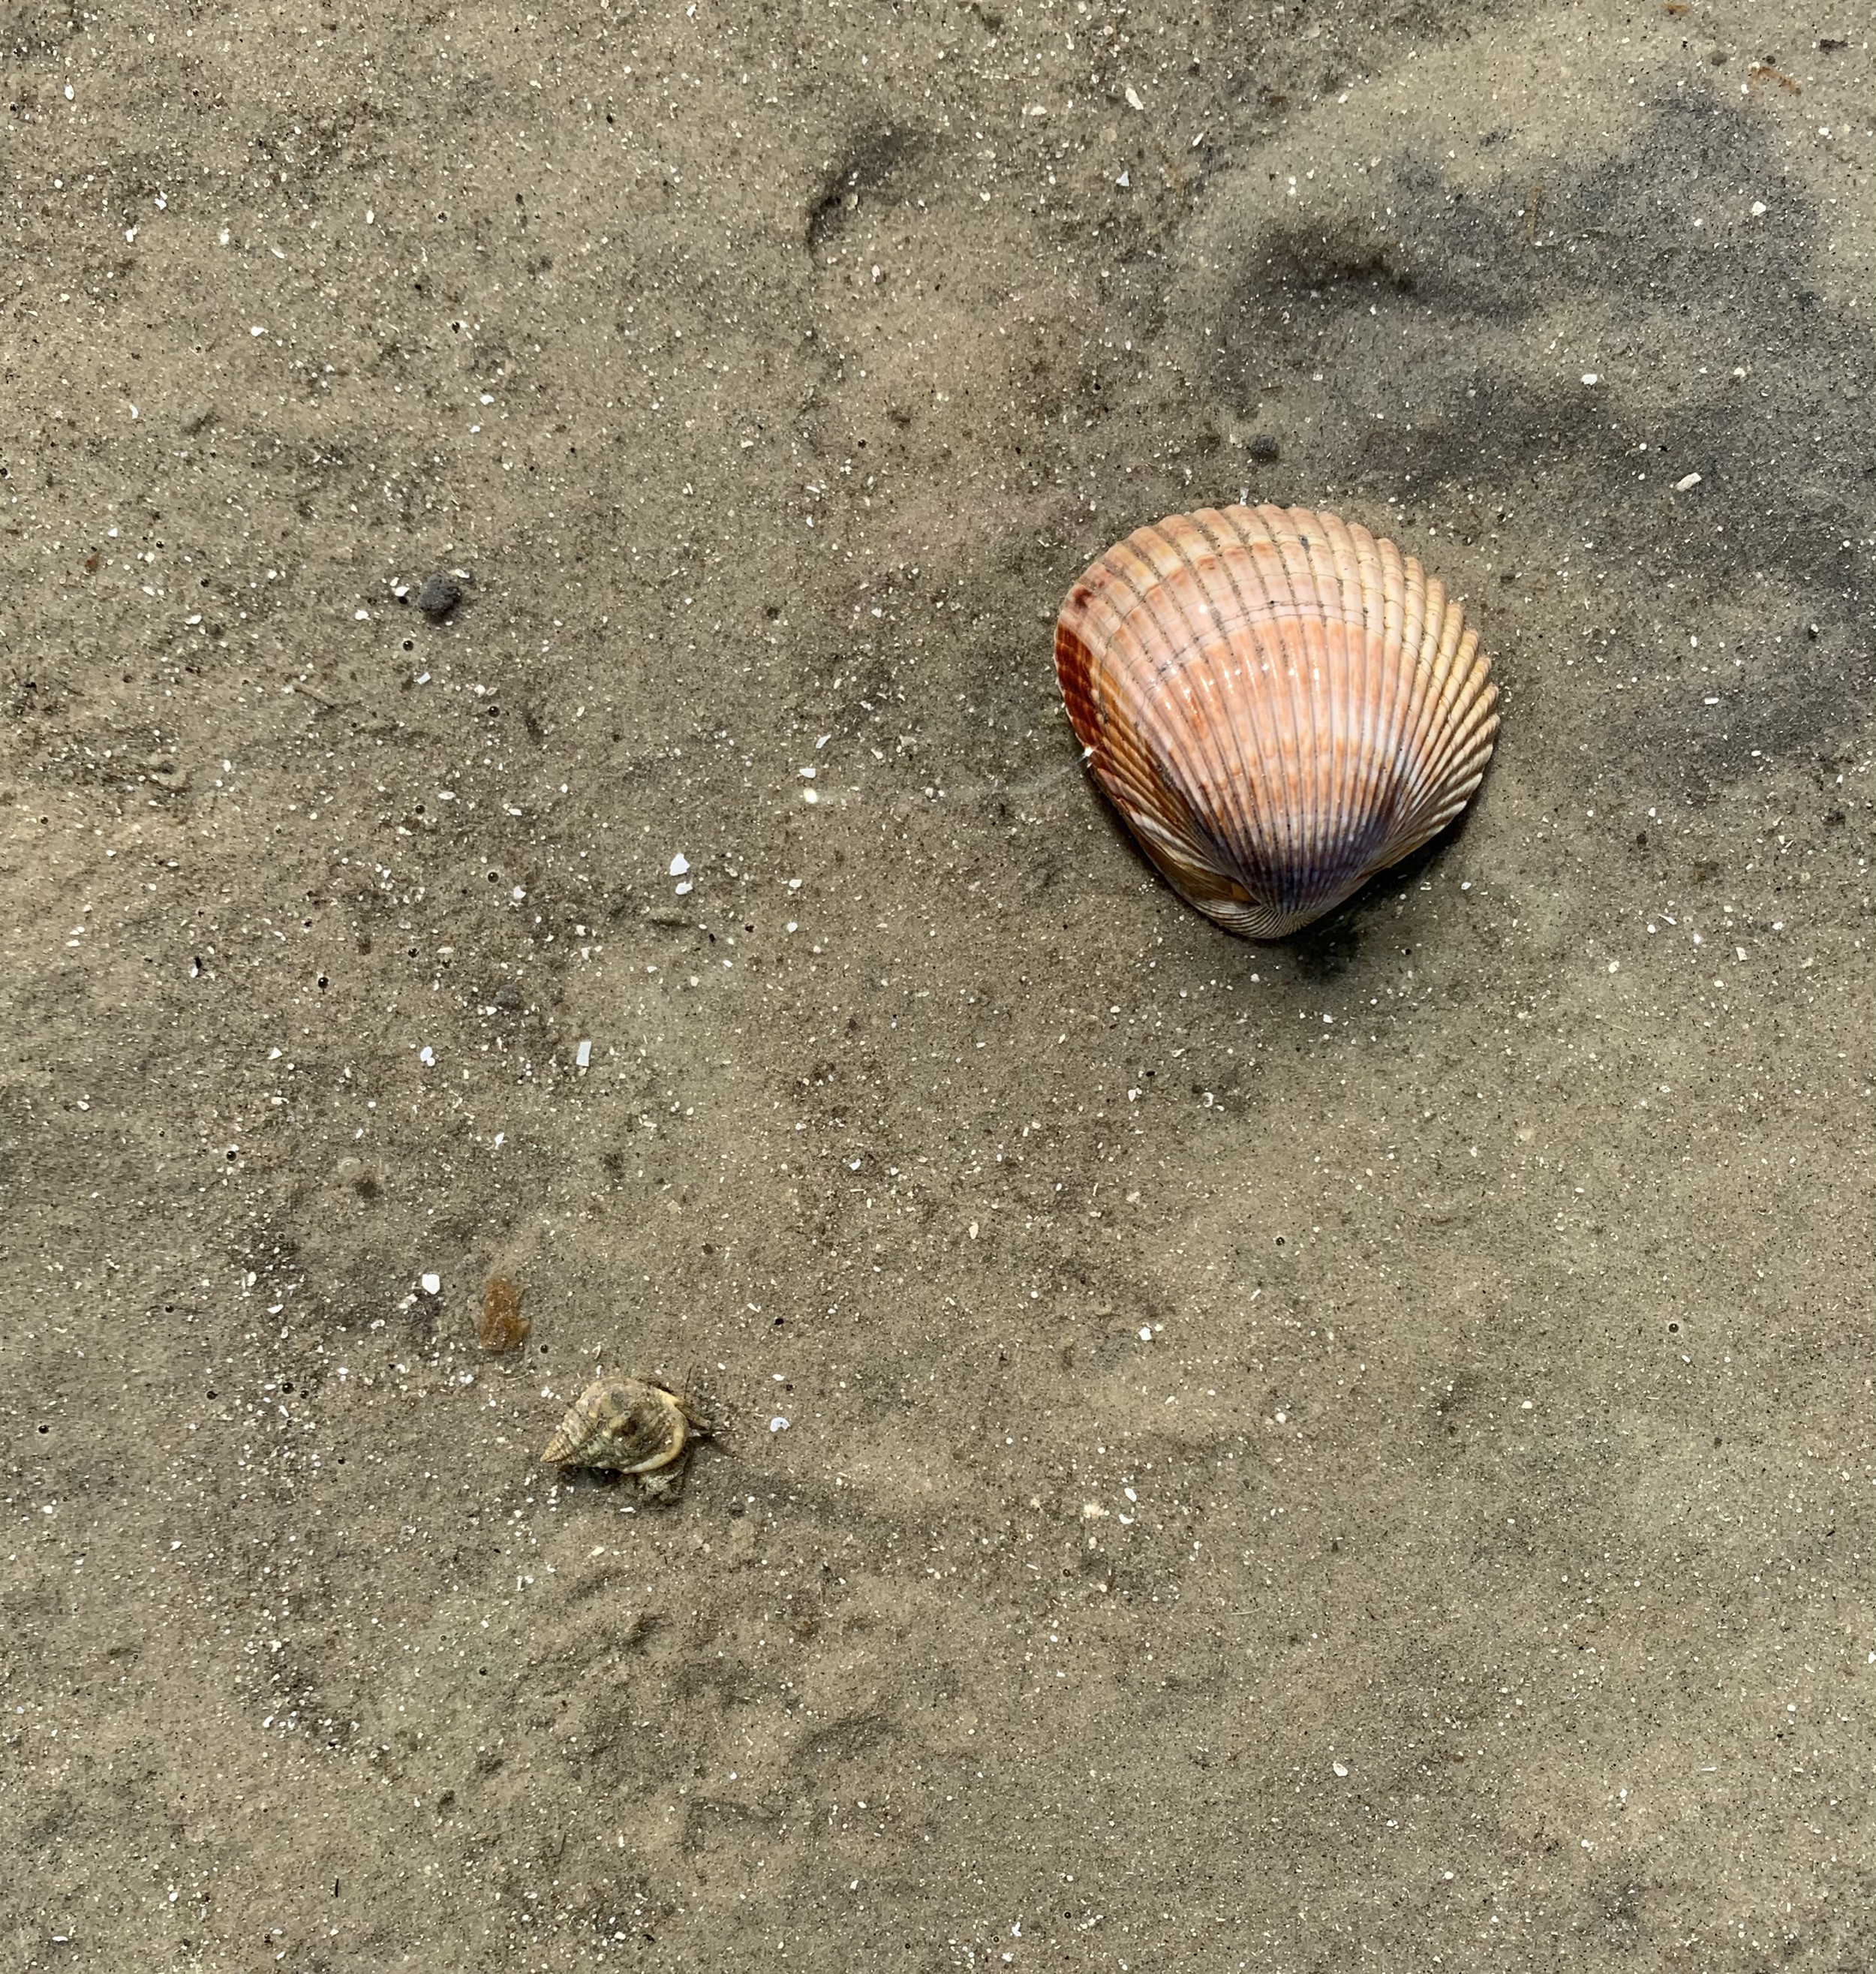 Whole clam and tiny mollusk